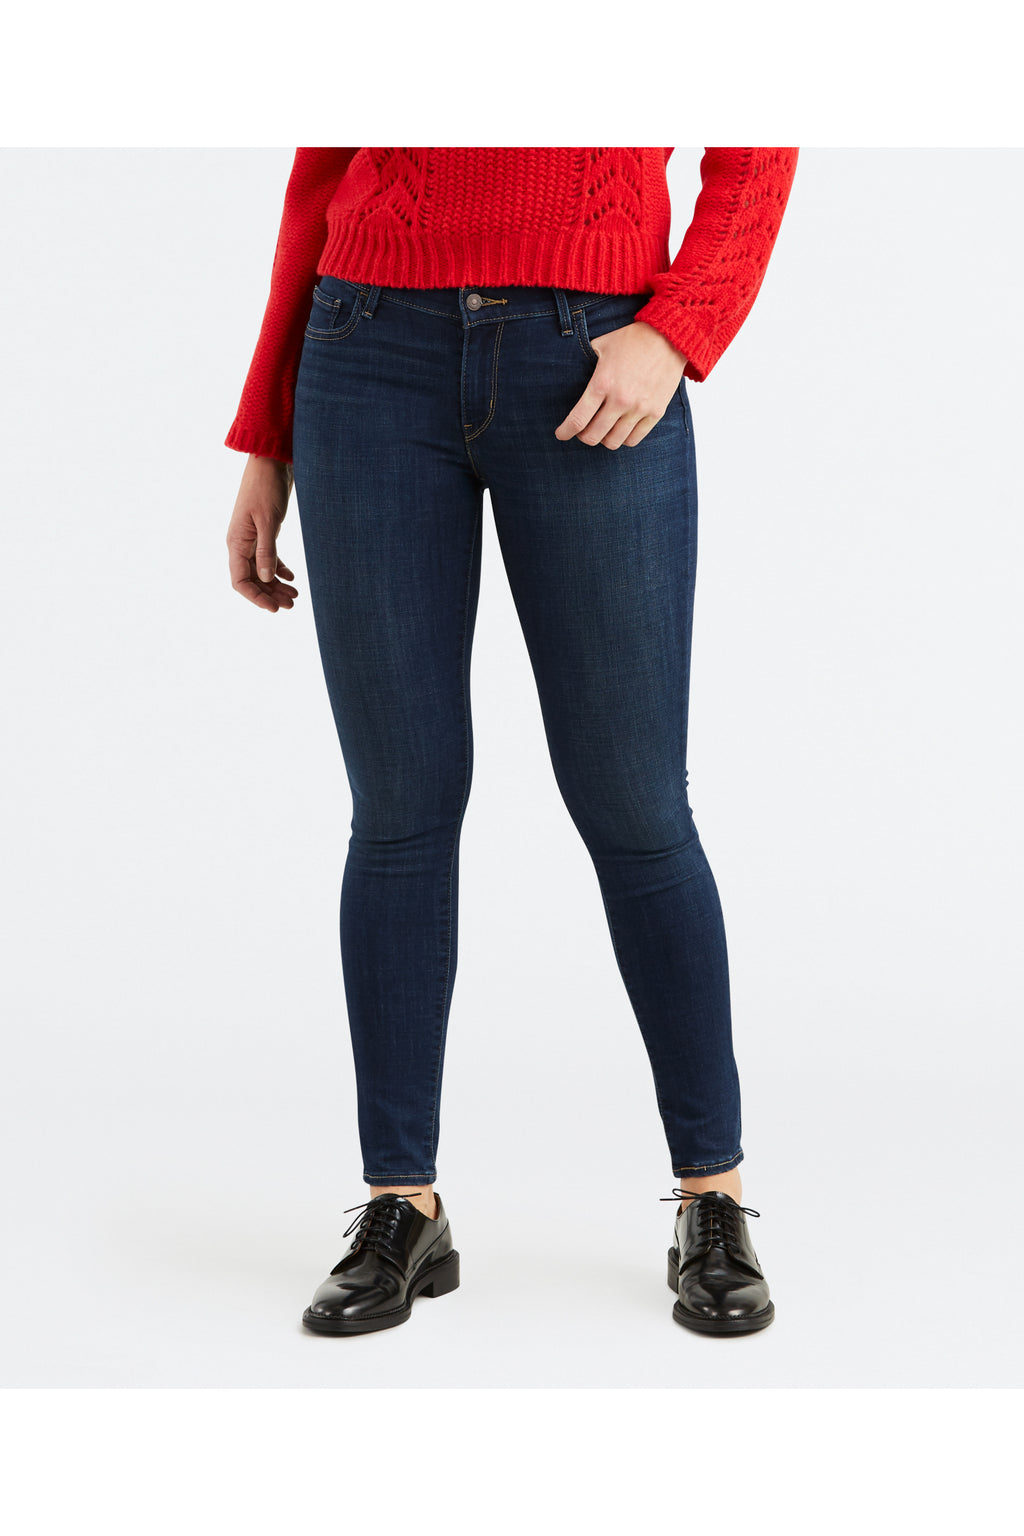 Levi's Womens 710 Super Skinny Jeans - Evolution